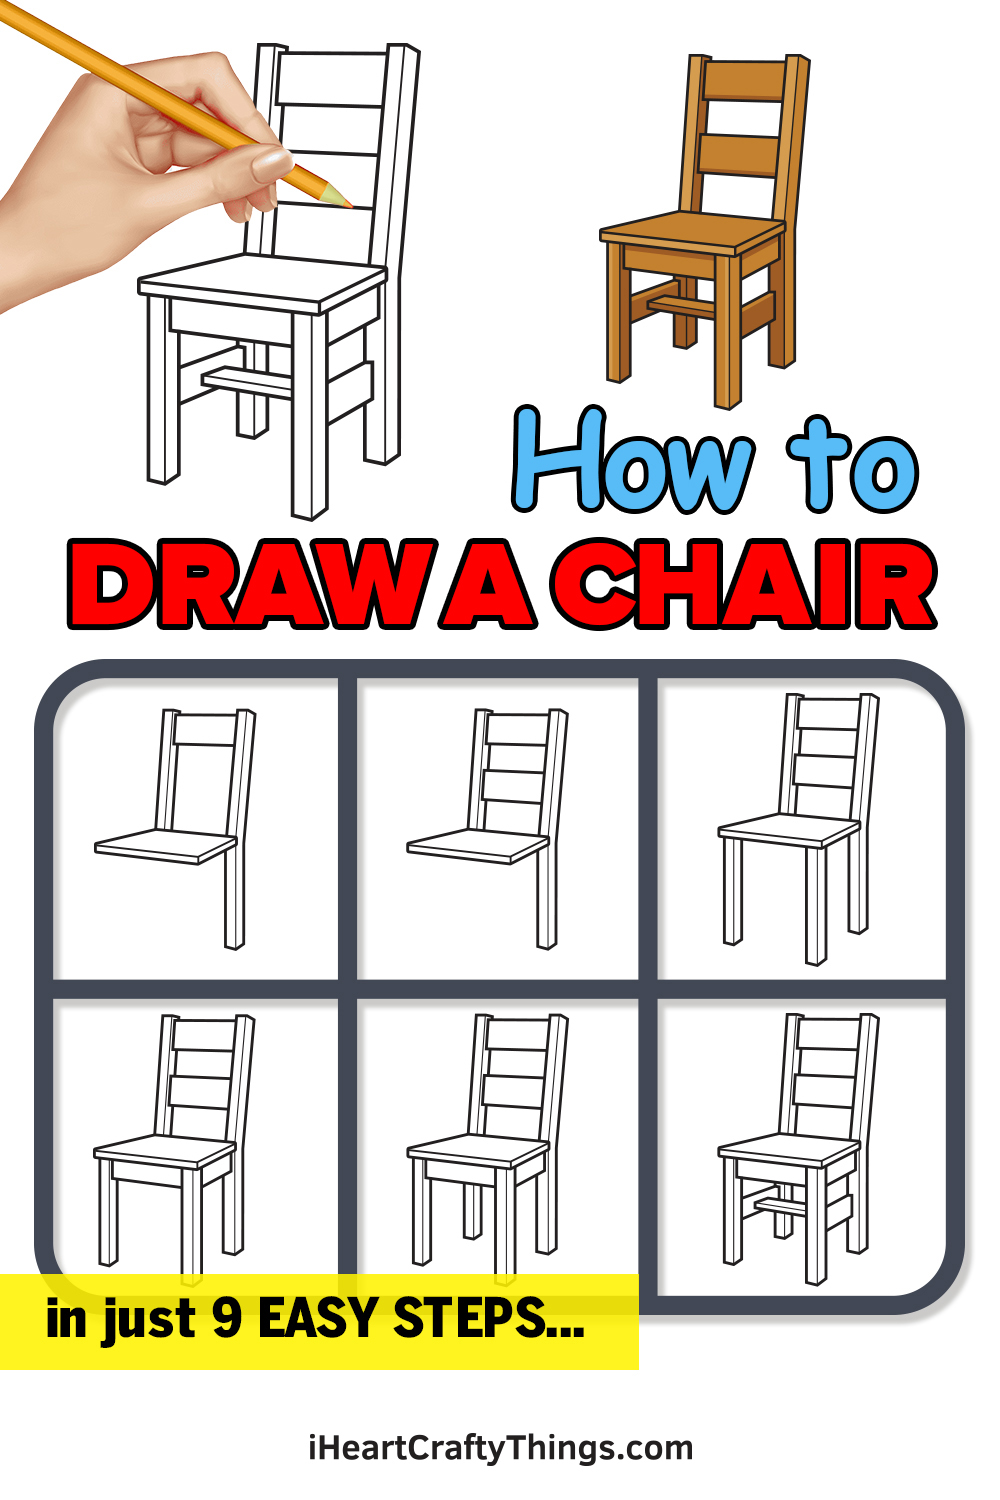 How to Draw a Chair in 9 Easy Steps